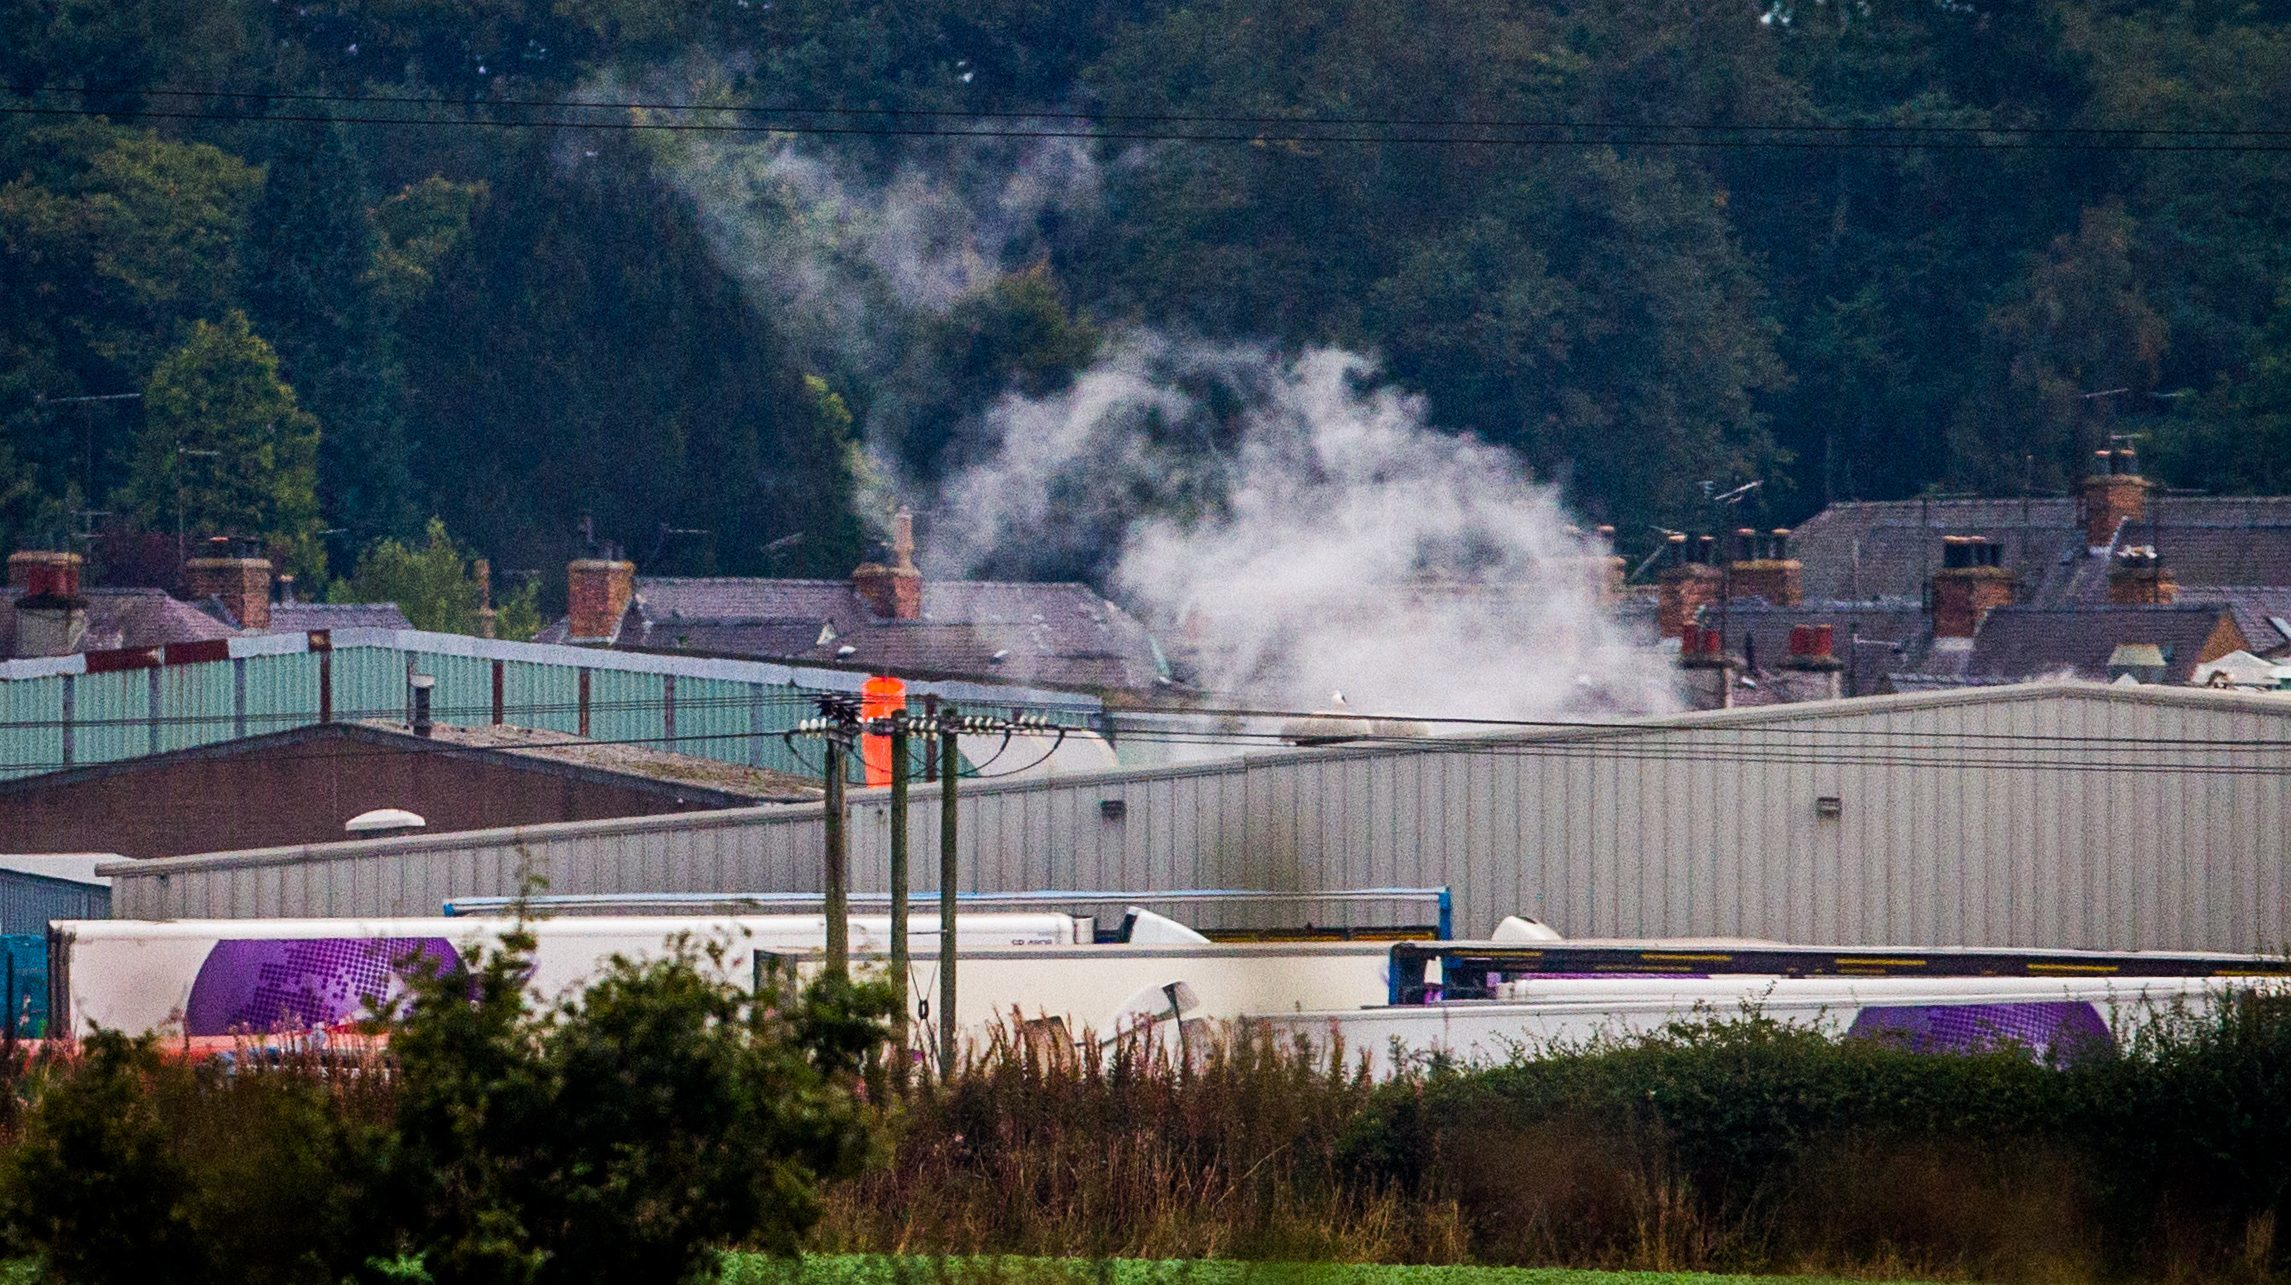 The 2 Sisters factory in Coupar Angus.